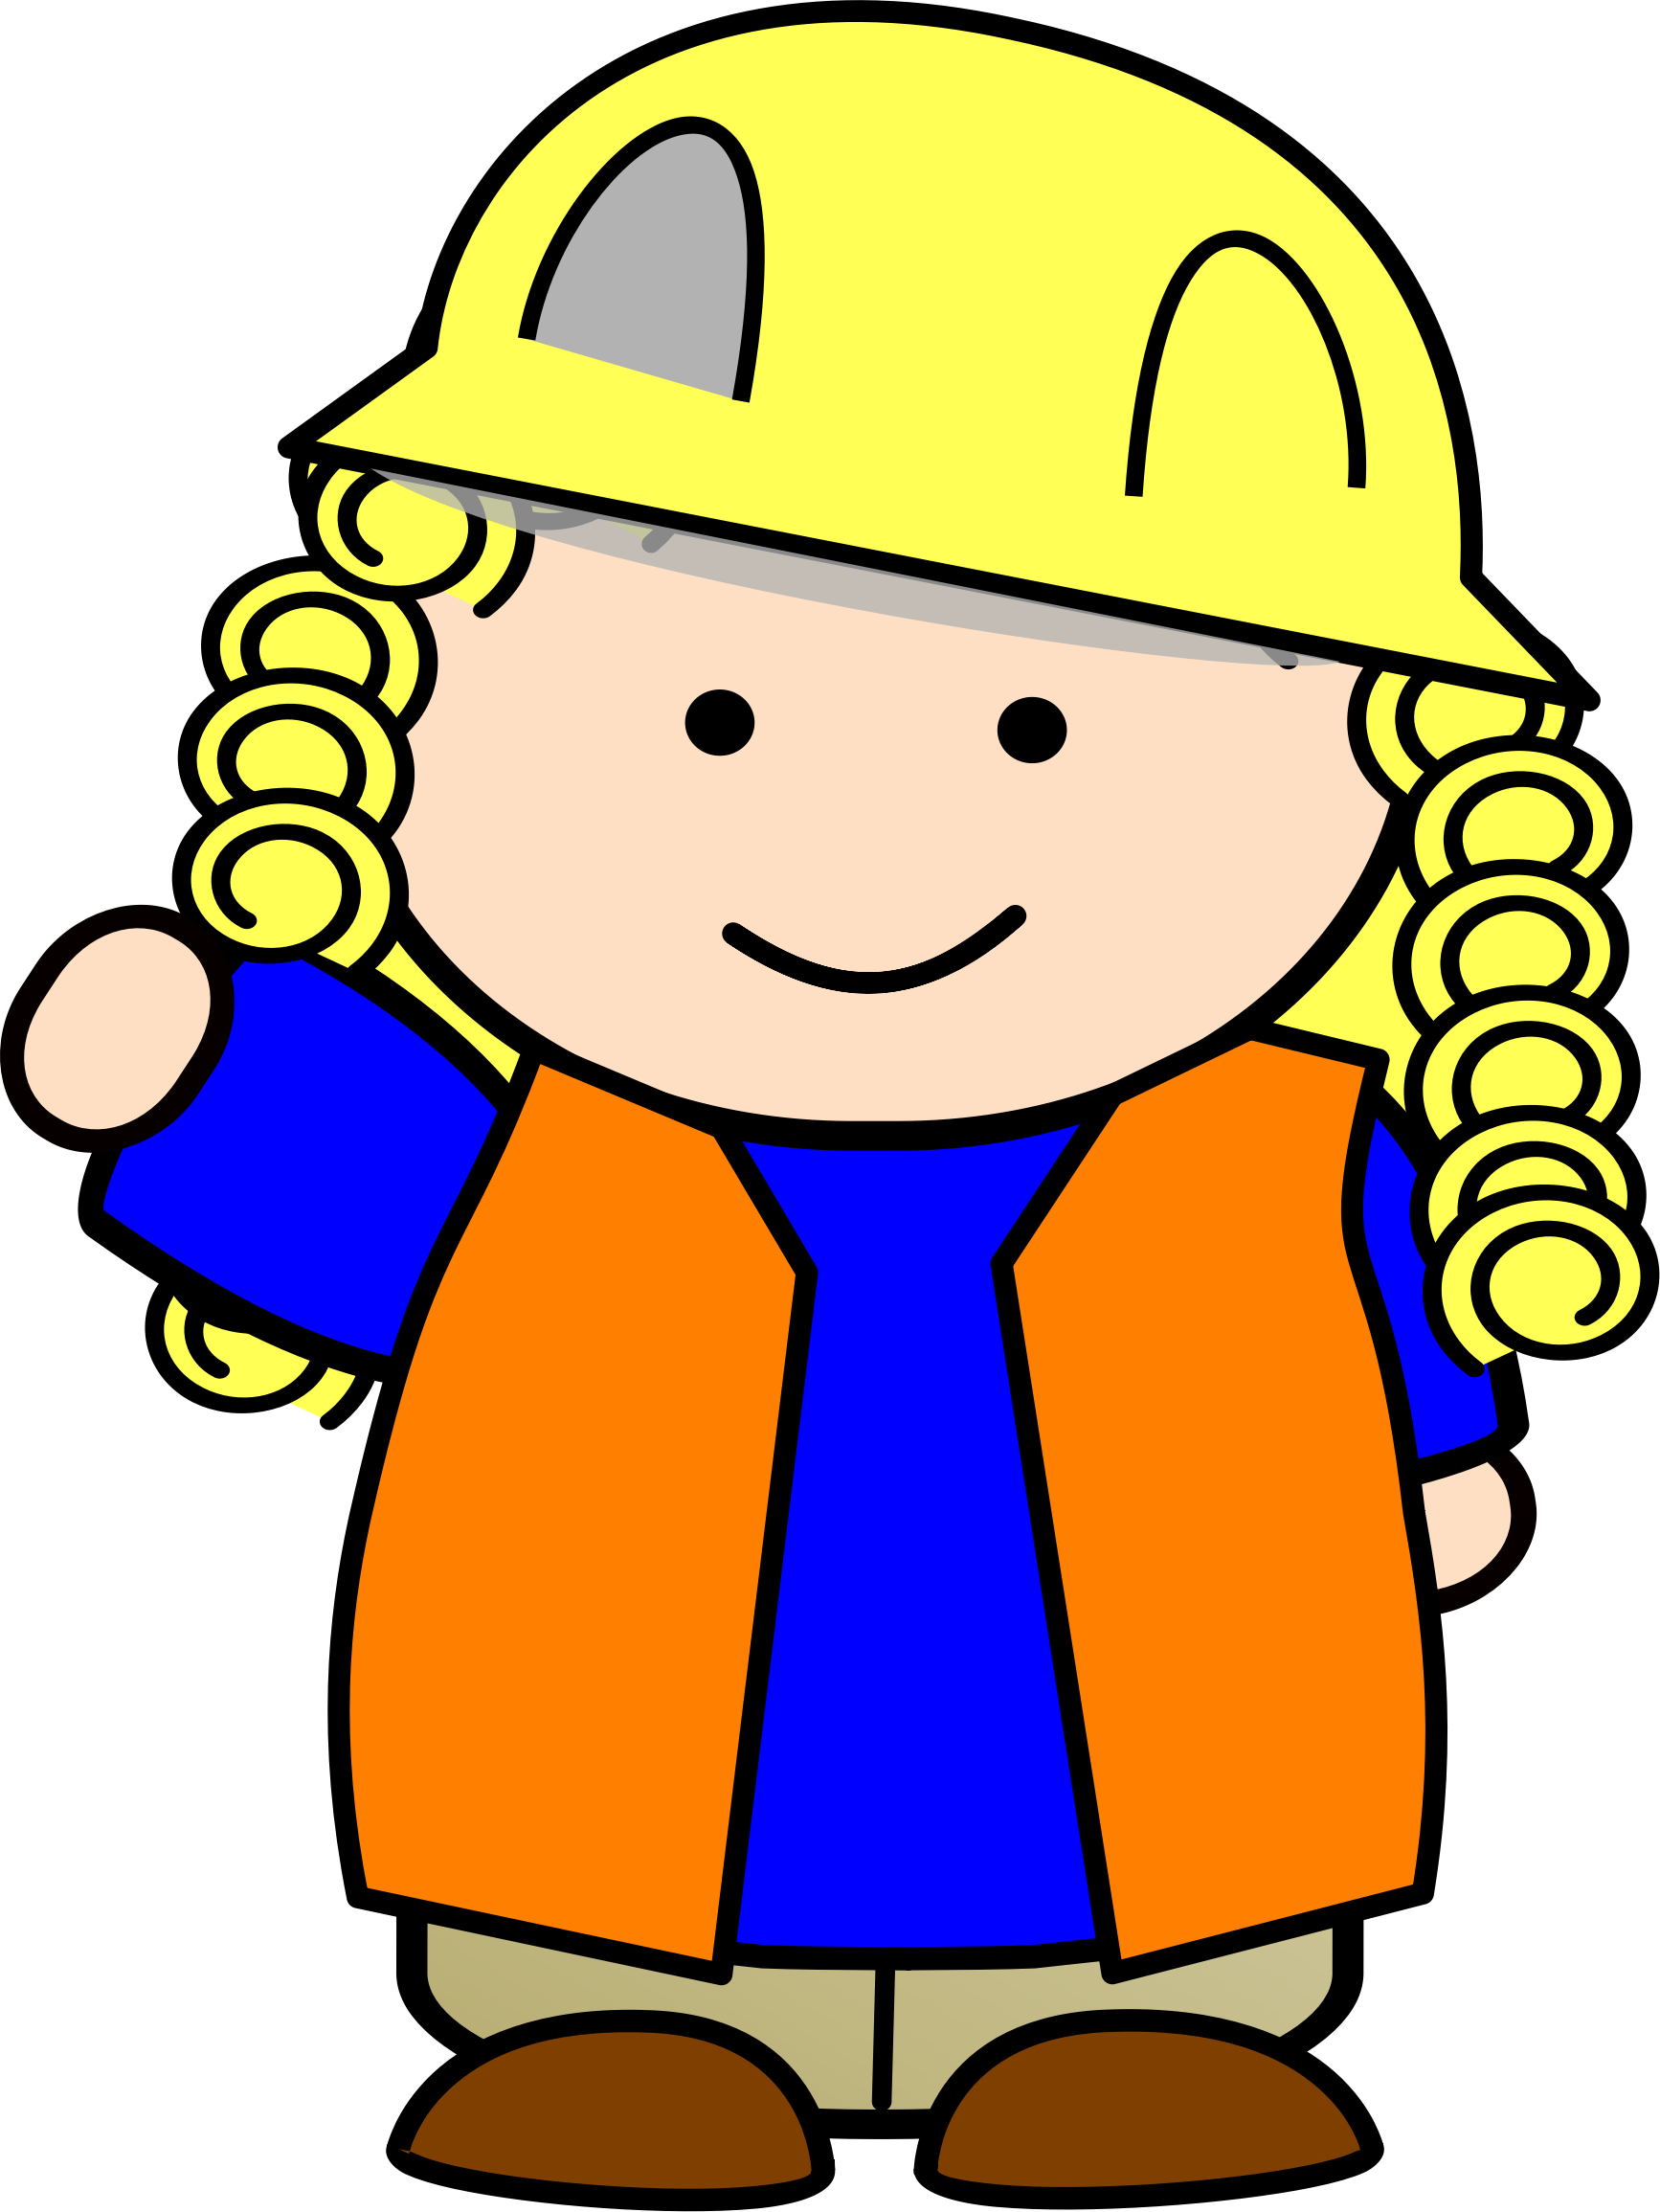 clip art library library Kid big image png. Children clipart construction.